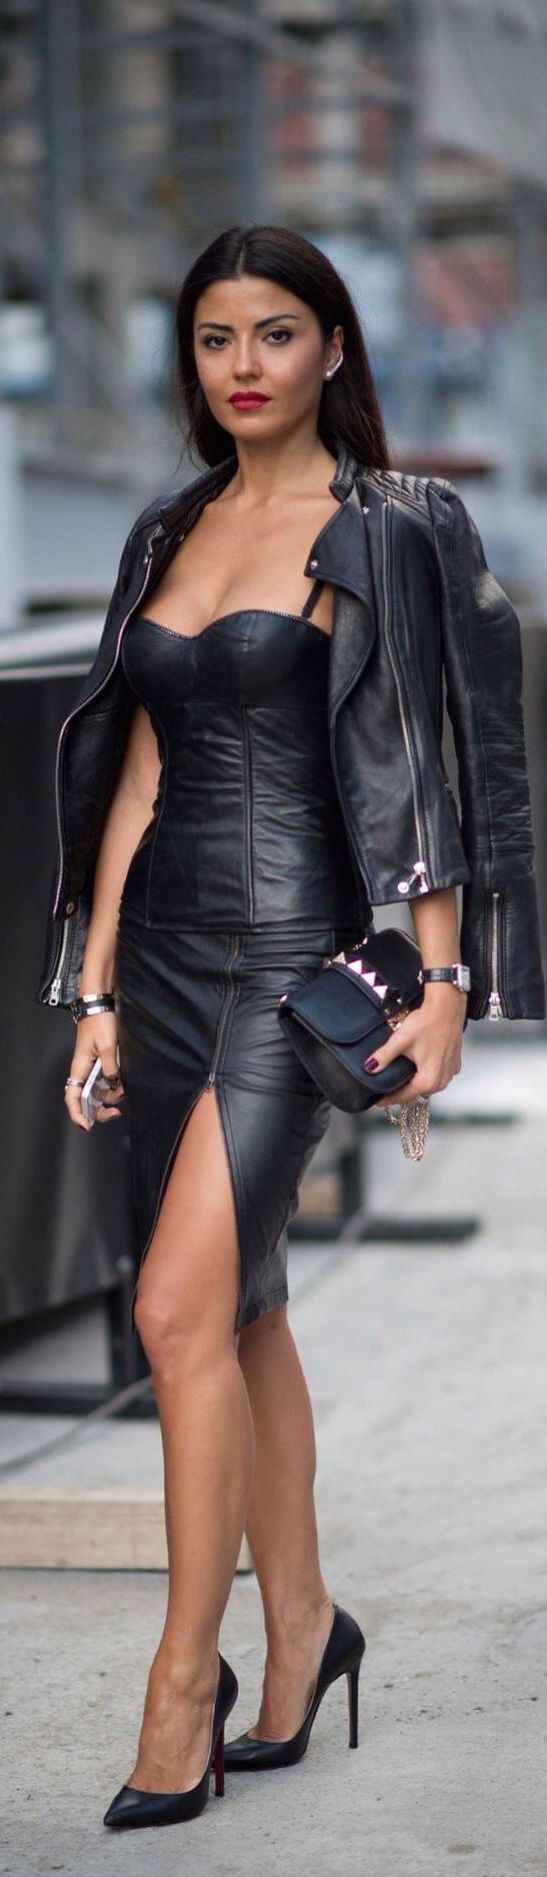 25  best ideas about Black leather skirt outfits on Pinterest ...